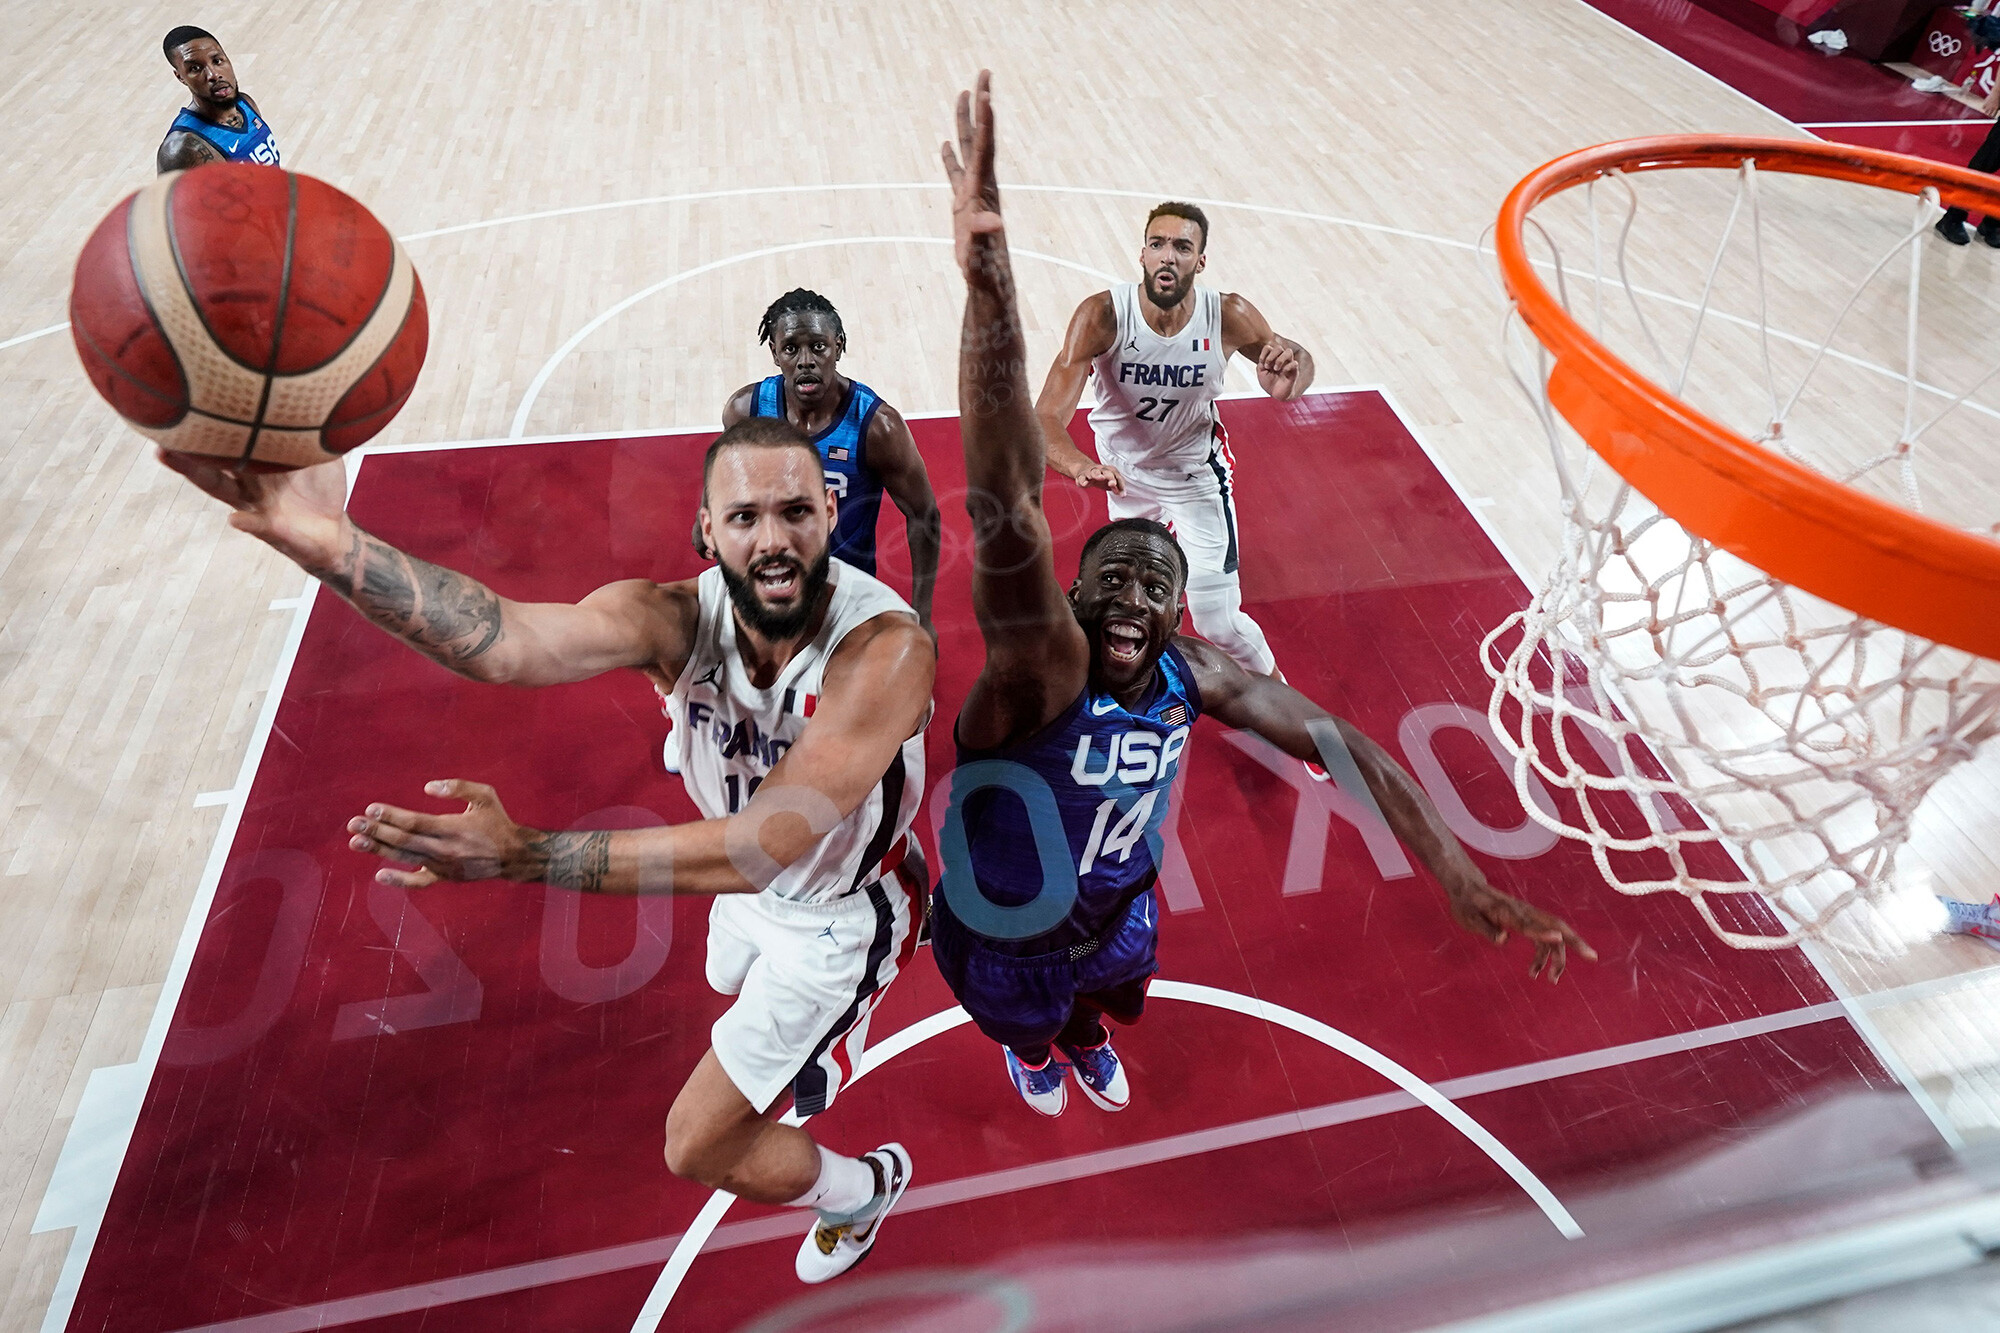 <i>Eric Gay/AFP/Getty Images</i><br/>France's Evan Fournier goes for the basket past USA's Draymond Green at the Saitama Super Arena in Saitama